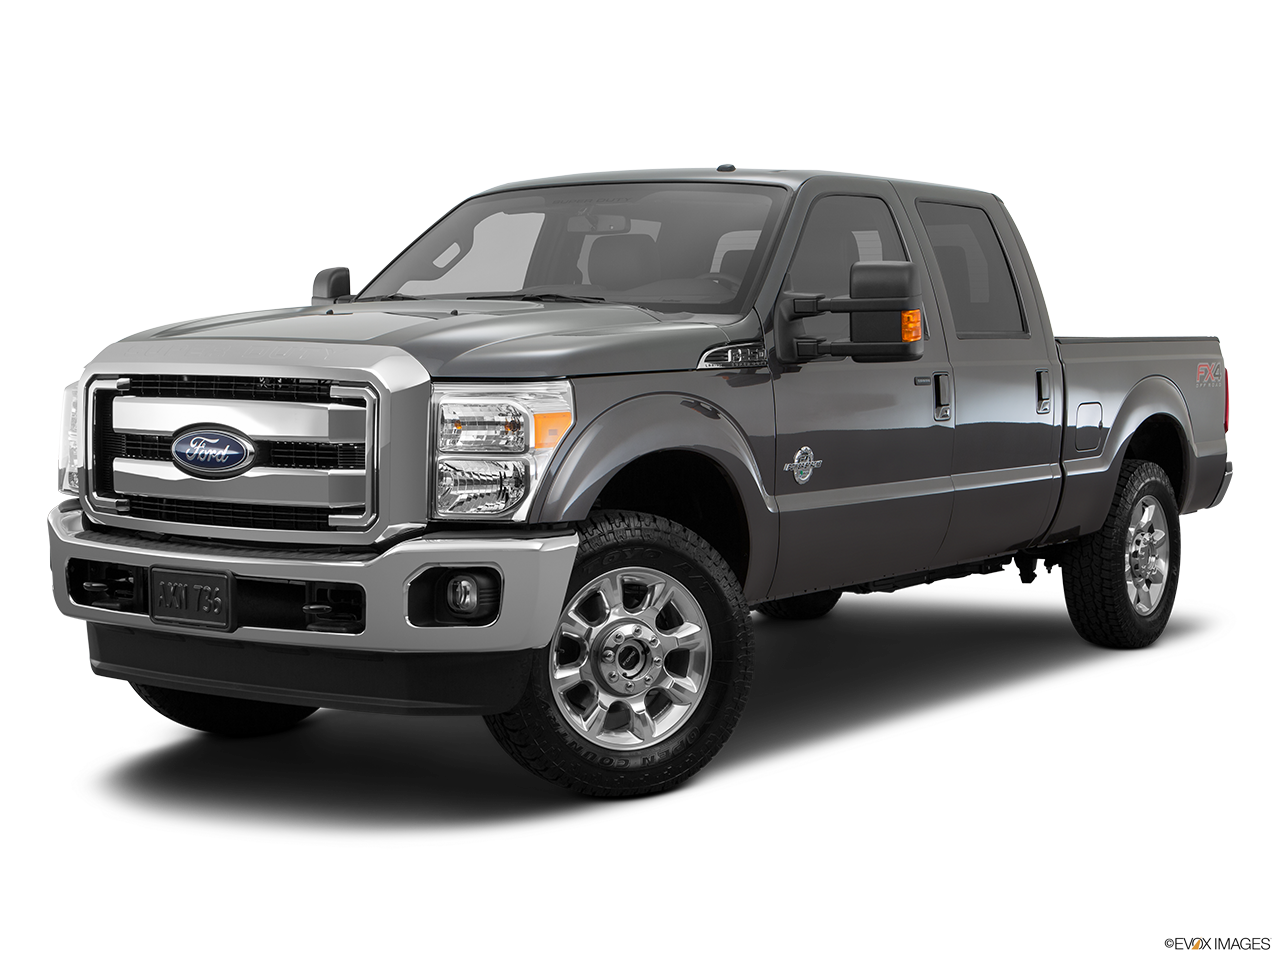 Test Drive A 2016 Ford F-250 SD at All Star Ford Canton in Canton